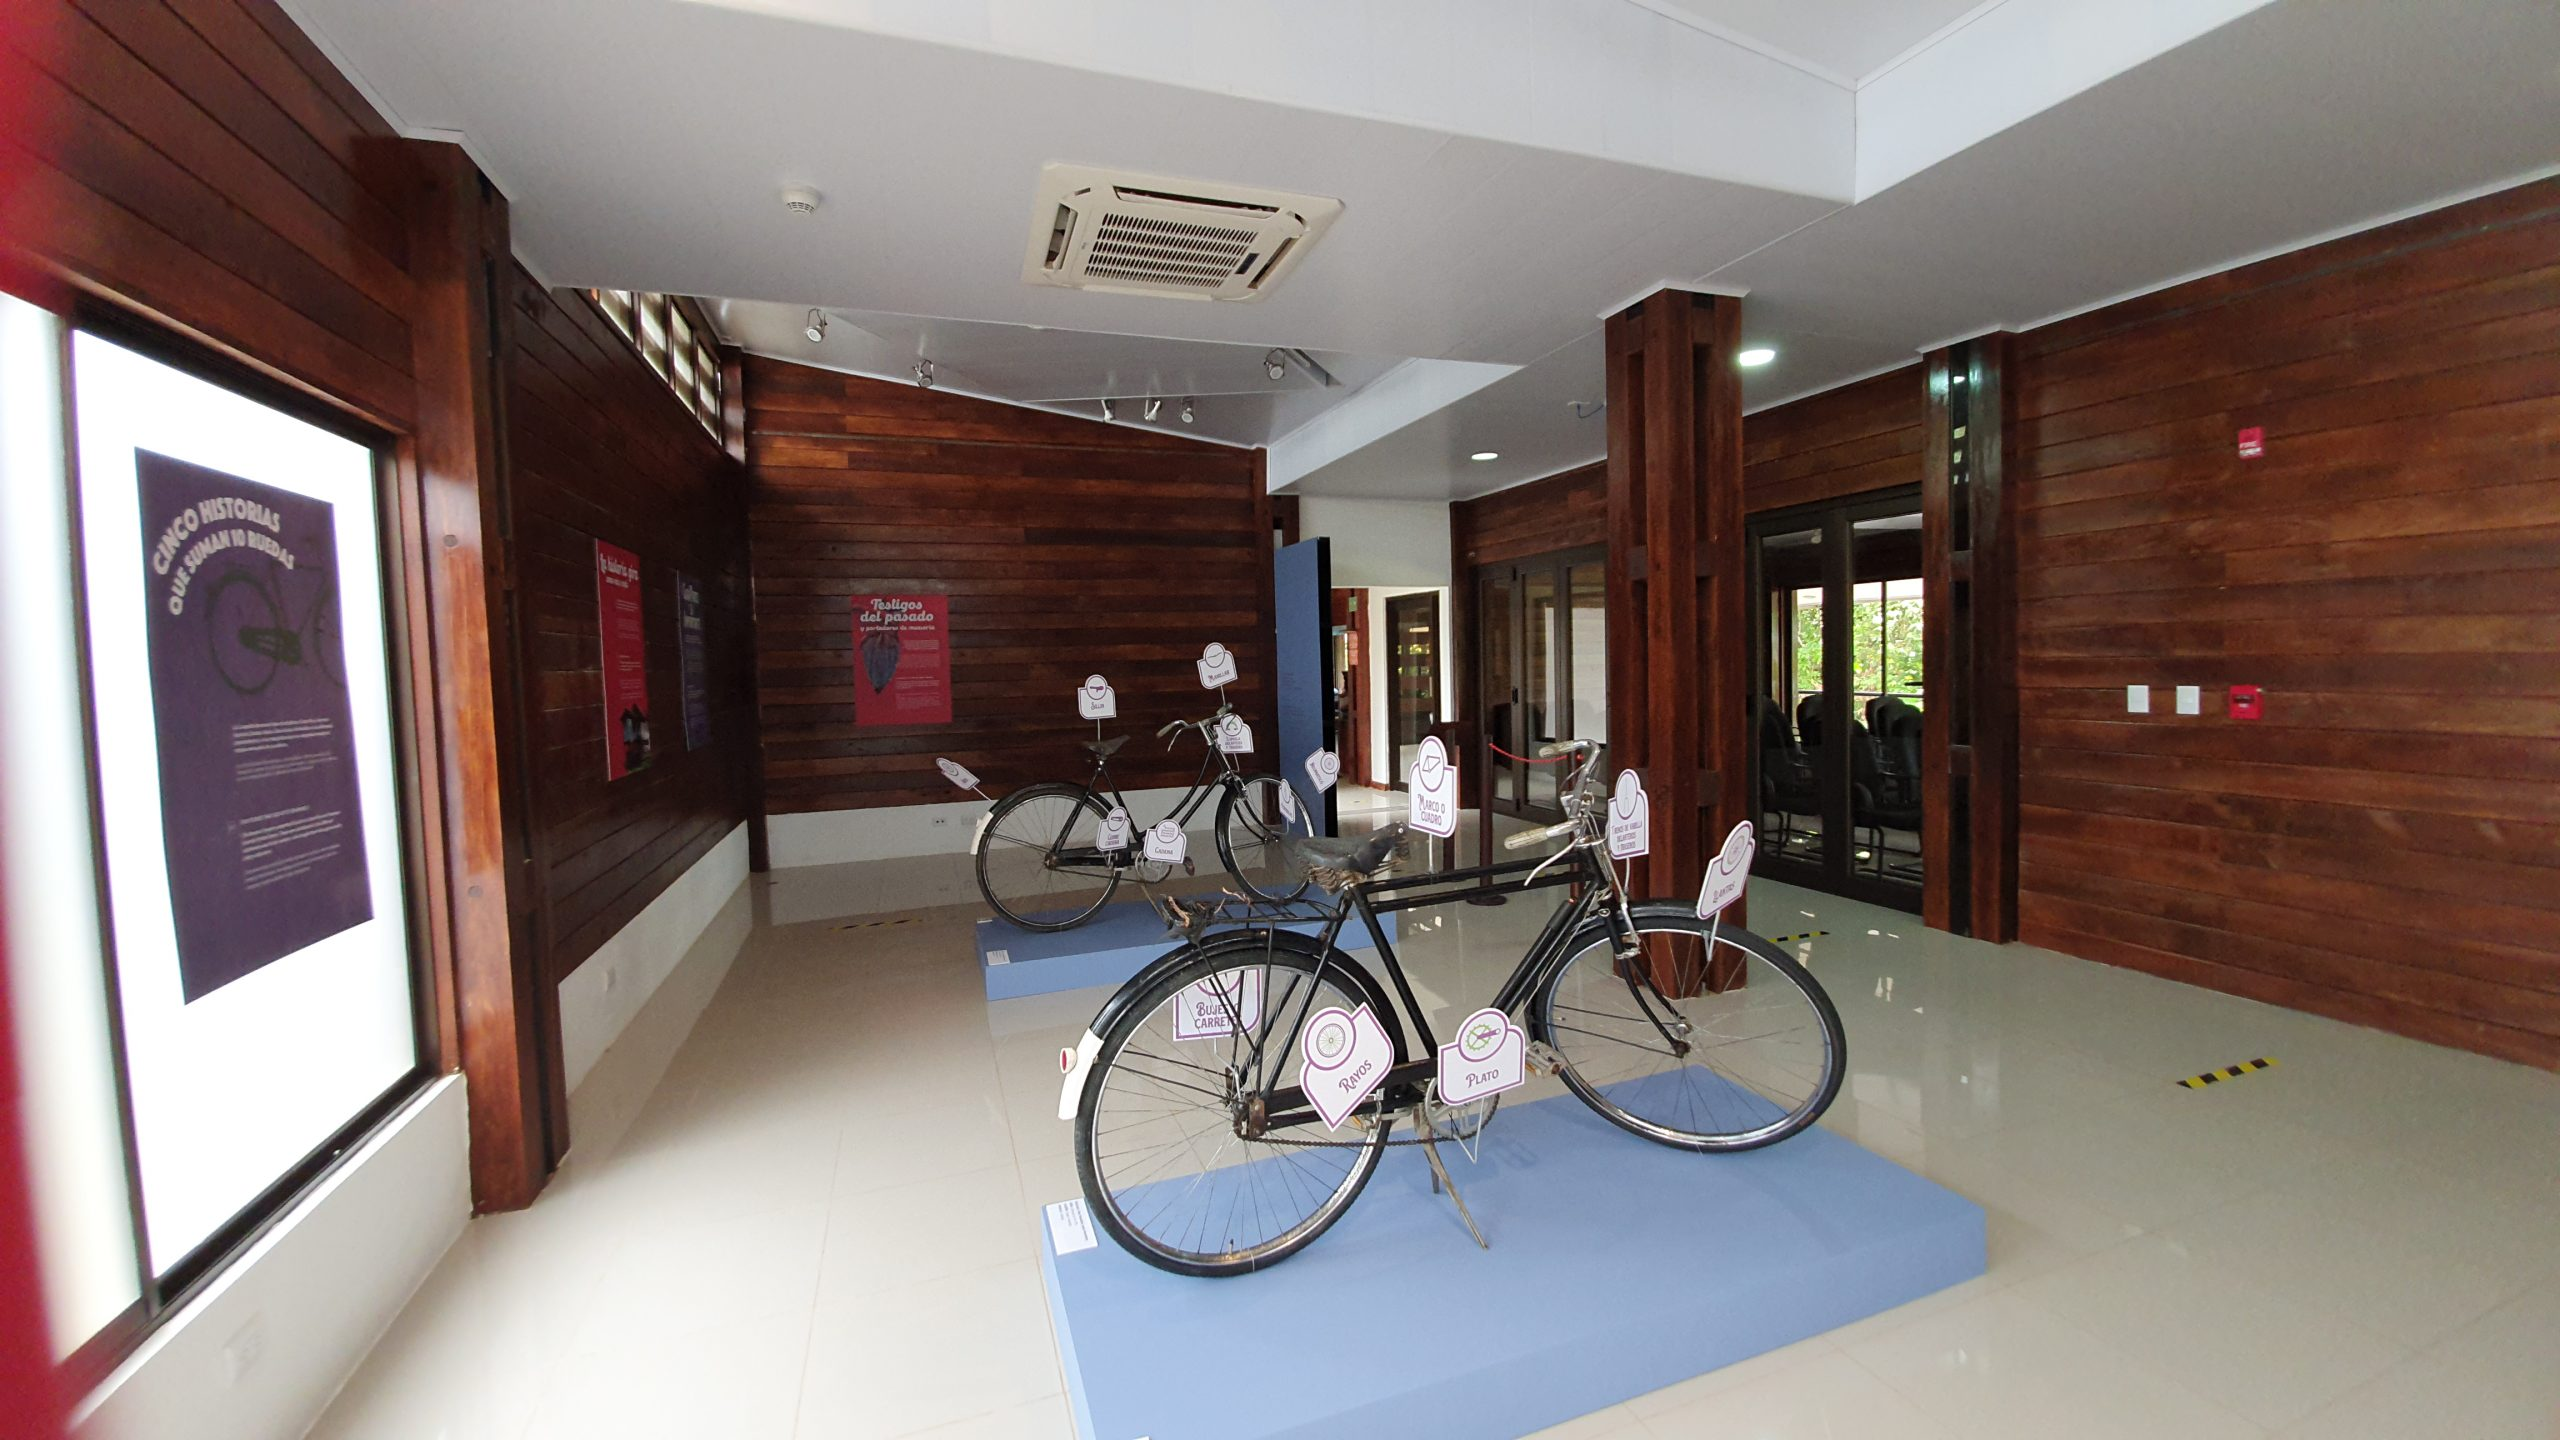 In Osa the history travels by bicycle